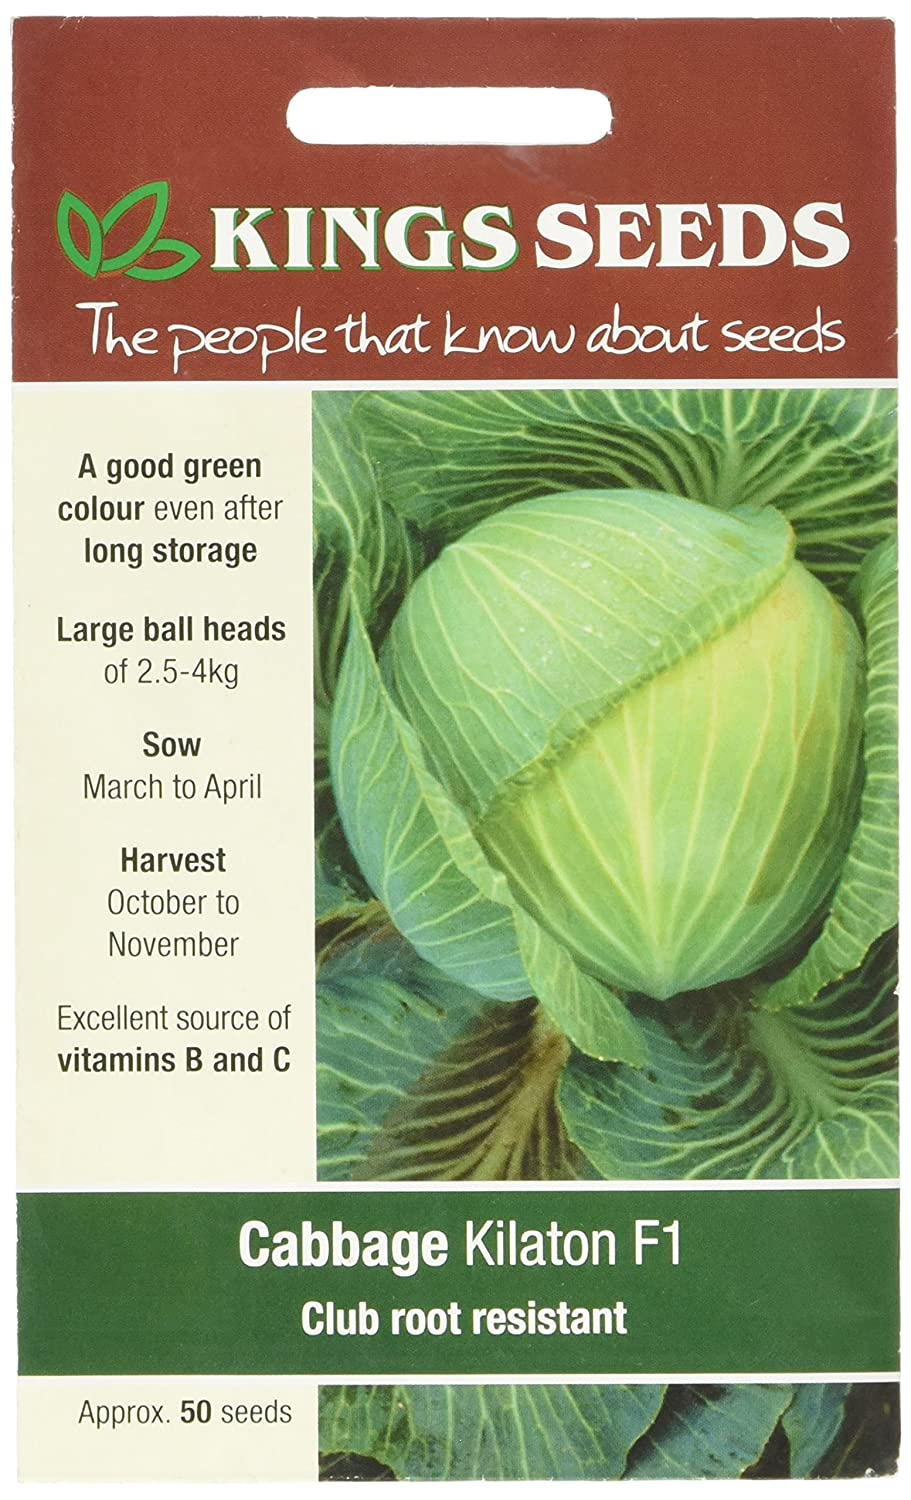 Pictorial Packet Cabbage Kings Seeds Vegetable Kilaton F1